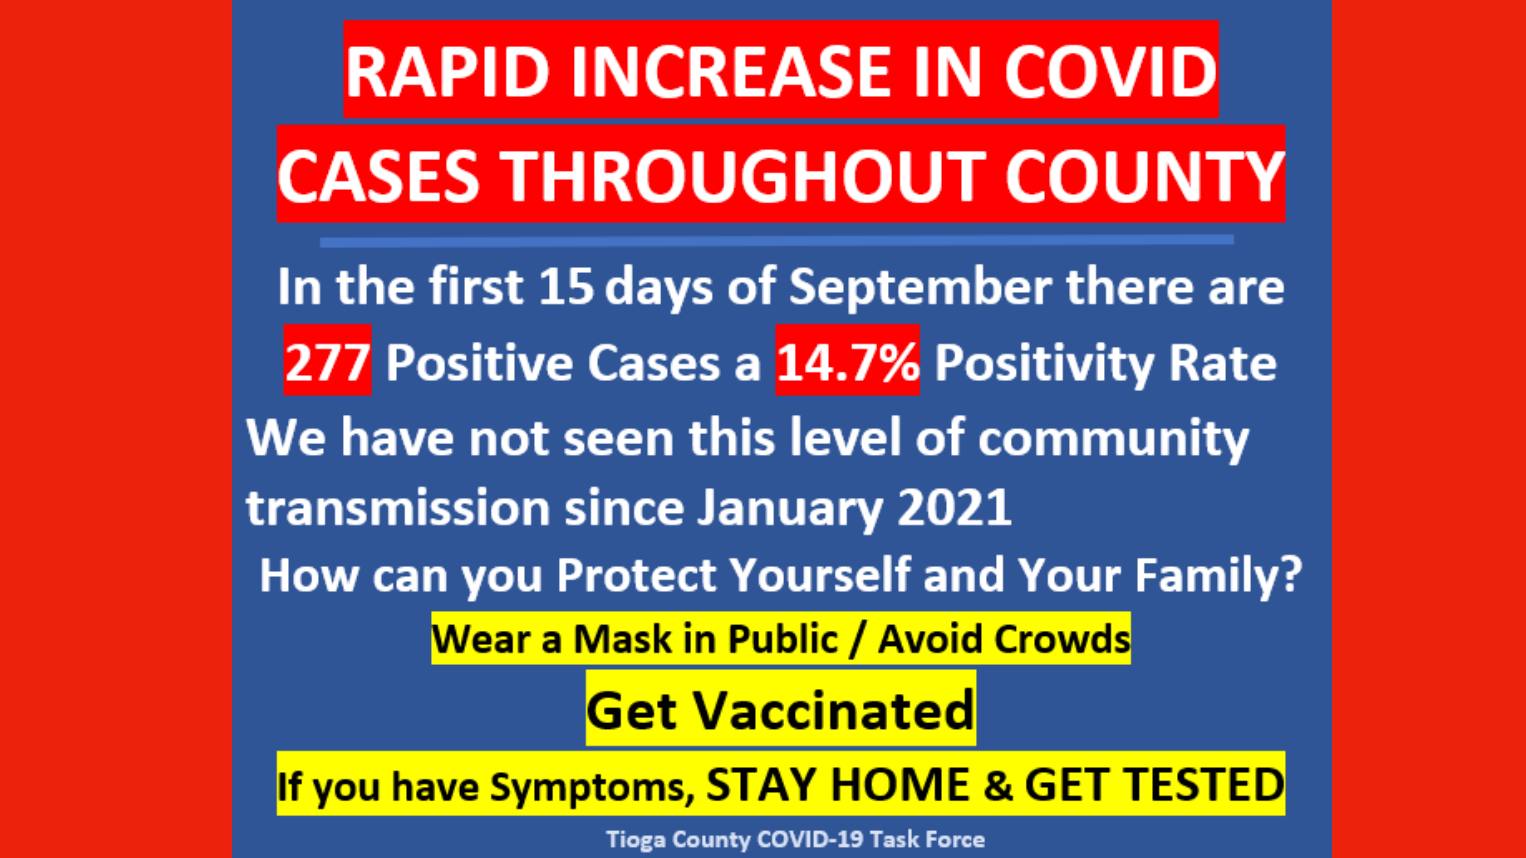 RAPID INCREASE IN COVID ALERT – FROM TIOGA COUNTY COVID-19 TASK FORCE